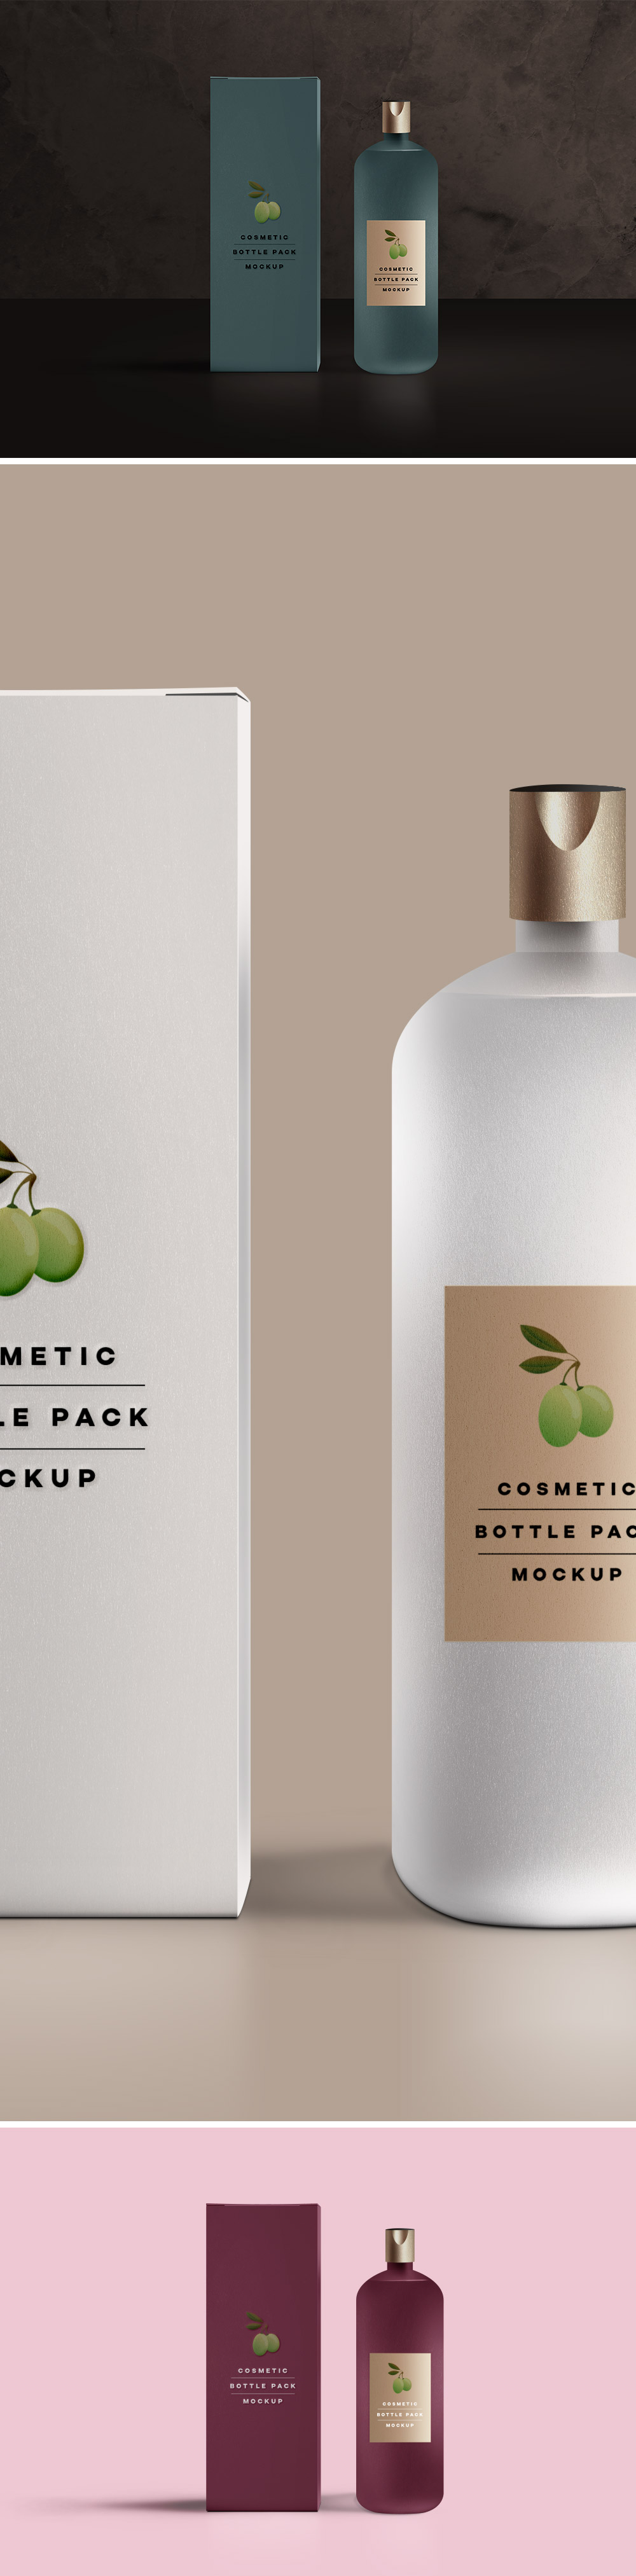 Cosmetic Packaging Mockup